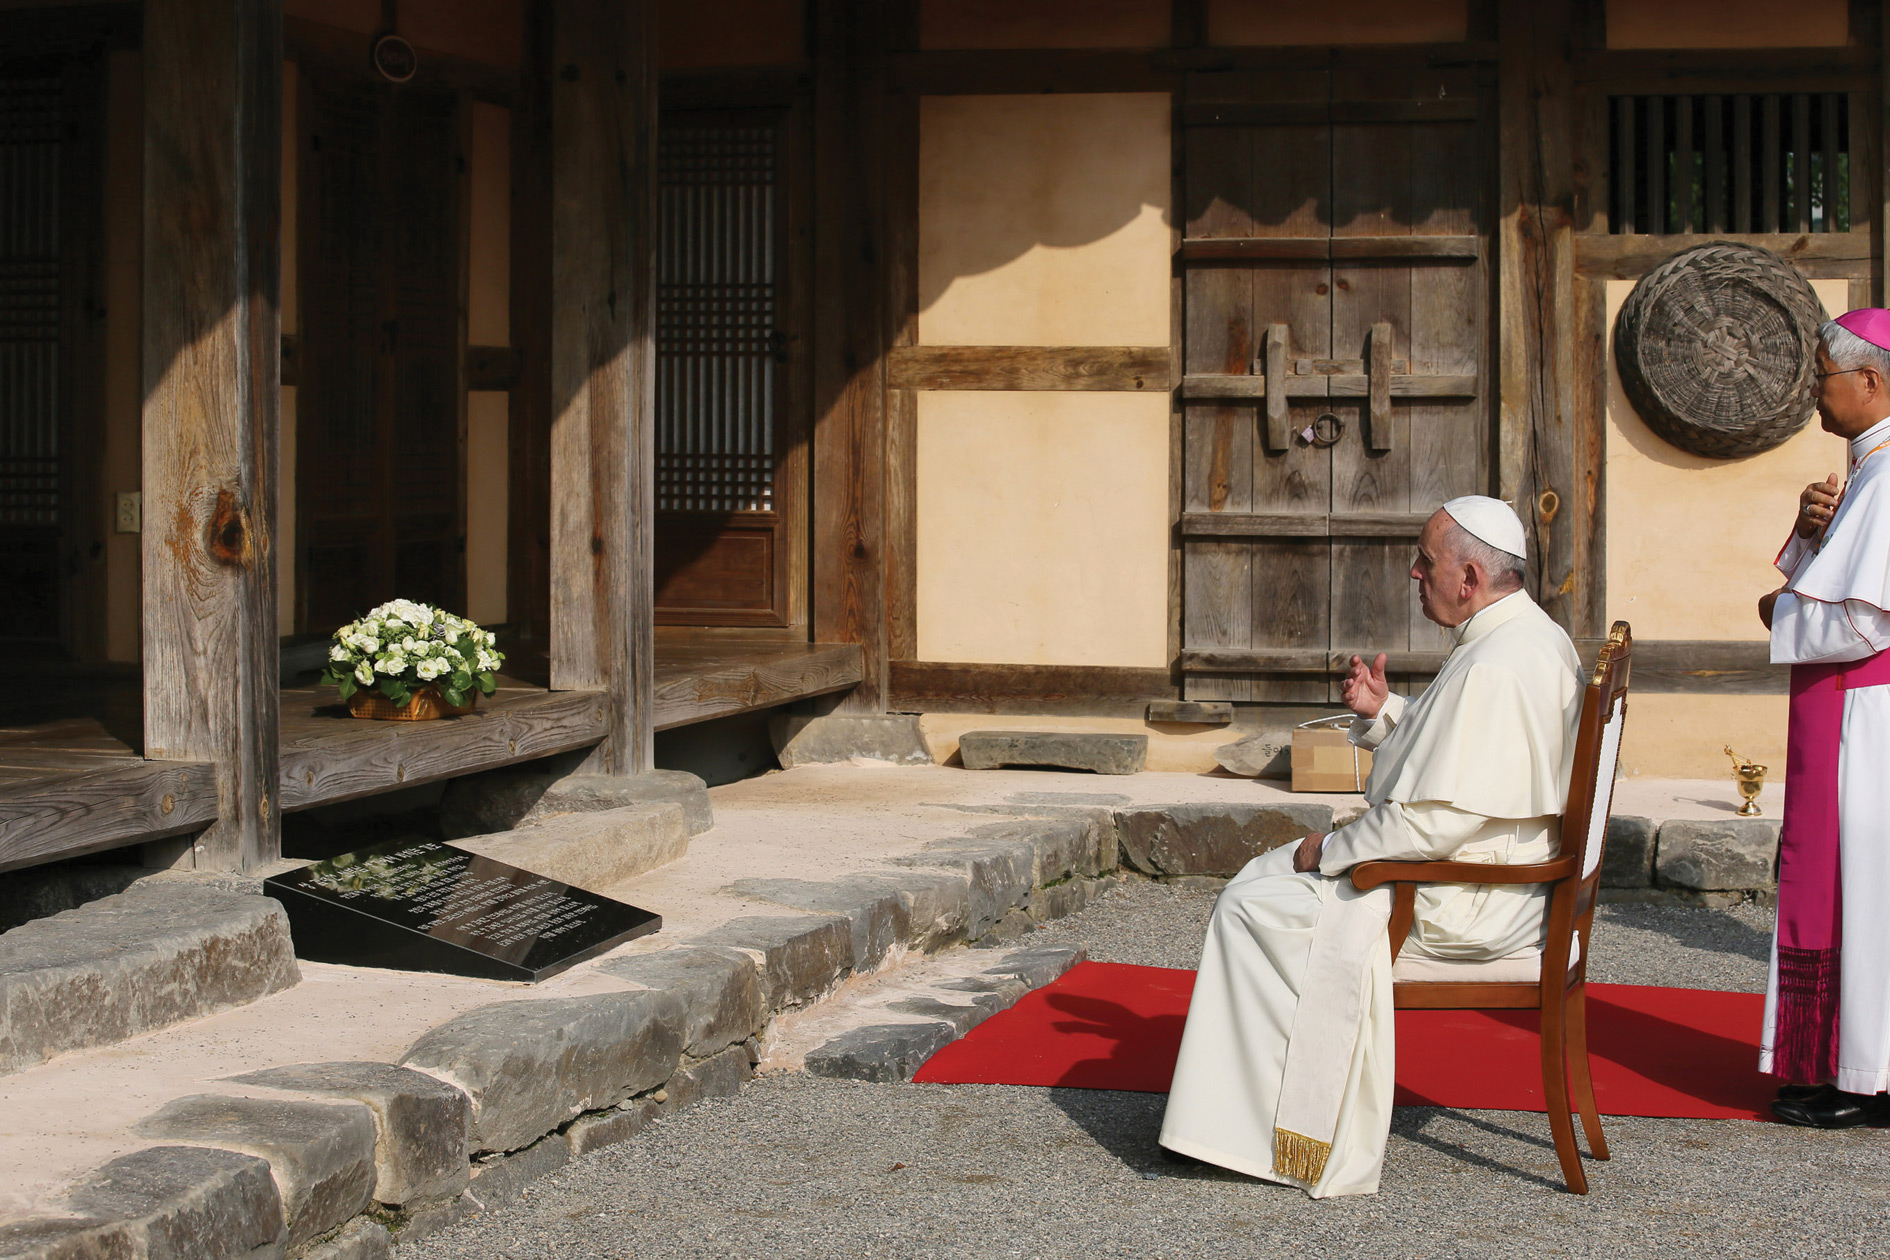 Pope Francis, after being received by the Rector of the Sanctuary, prays before the house of St. Andrew Taegon Kim, the first Korean priest.